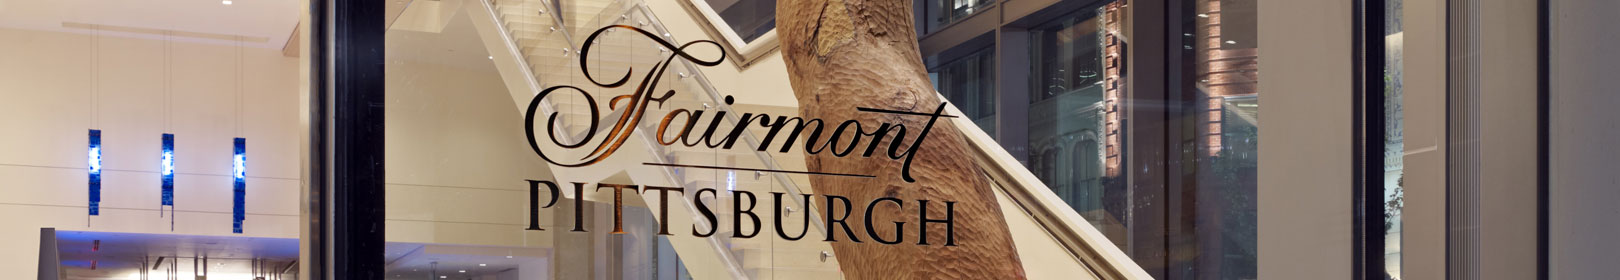 Lighthouse Electric | Fairmont Pittsburgh